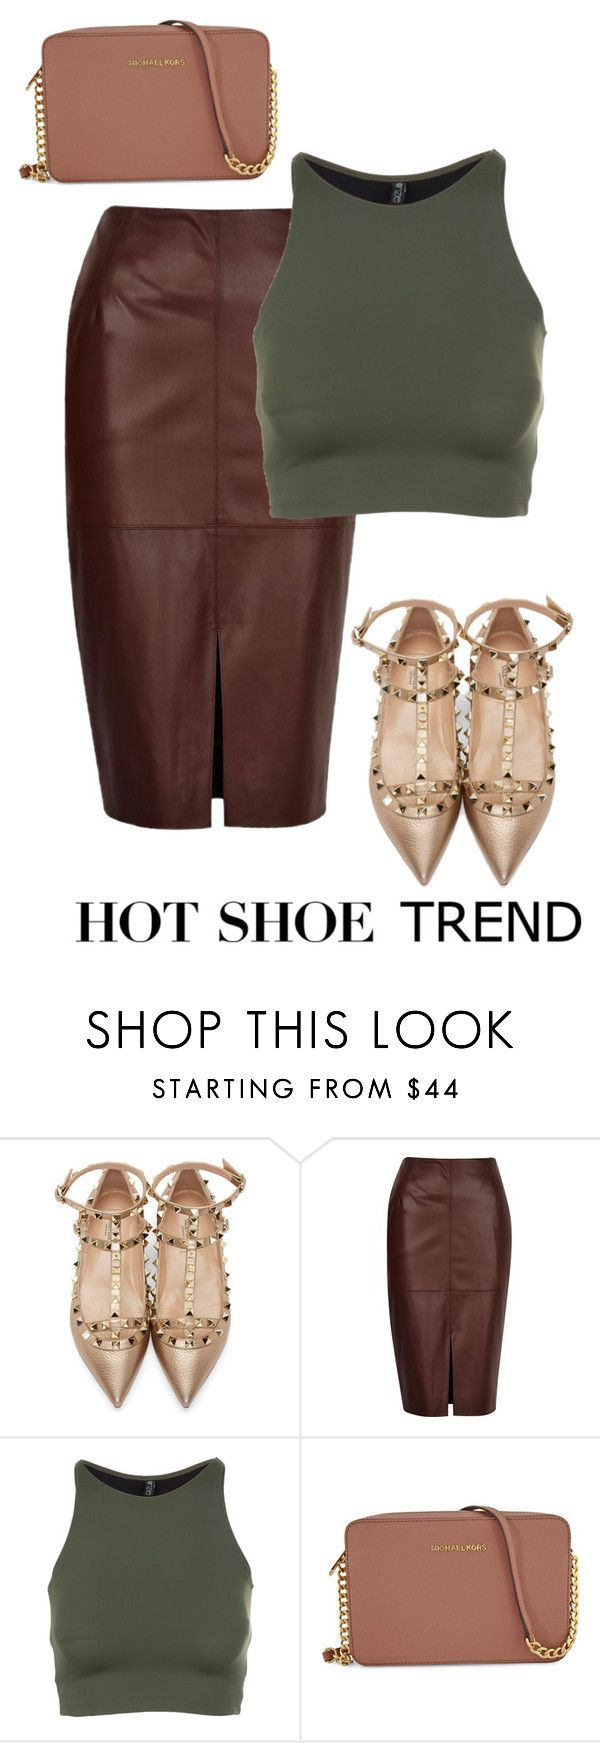 """""""hot shoe trend"""" by pocca ❤ liked on Polyvore featuring Valentino, River Island, Onzie and Michael Kors"""